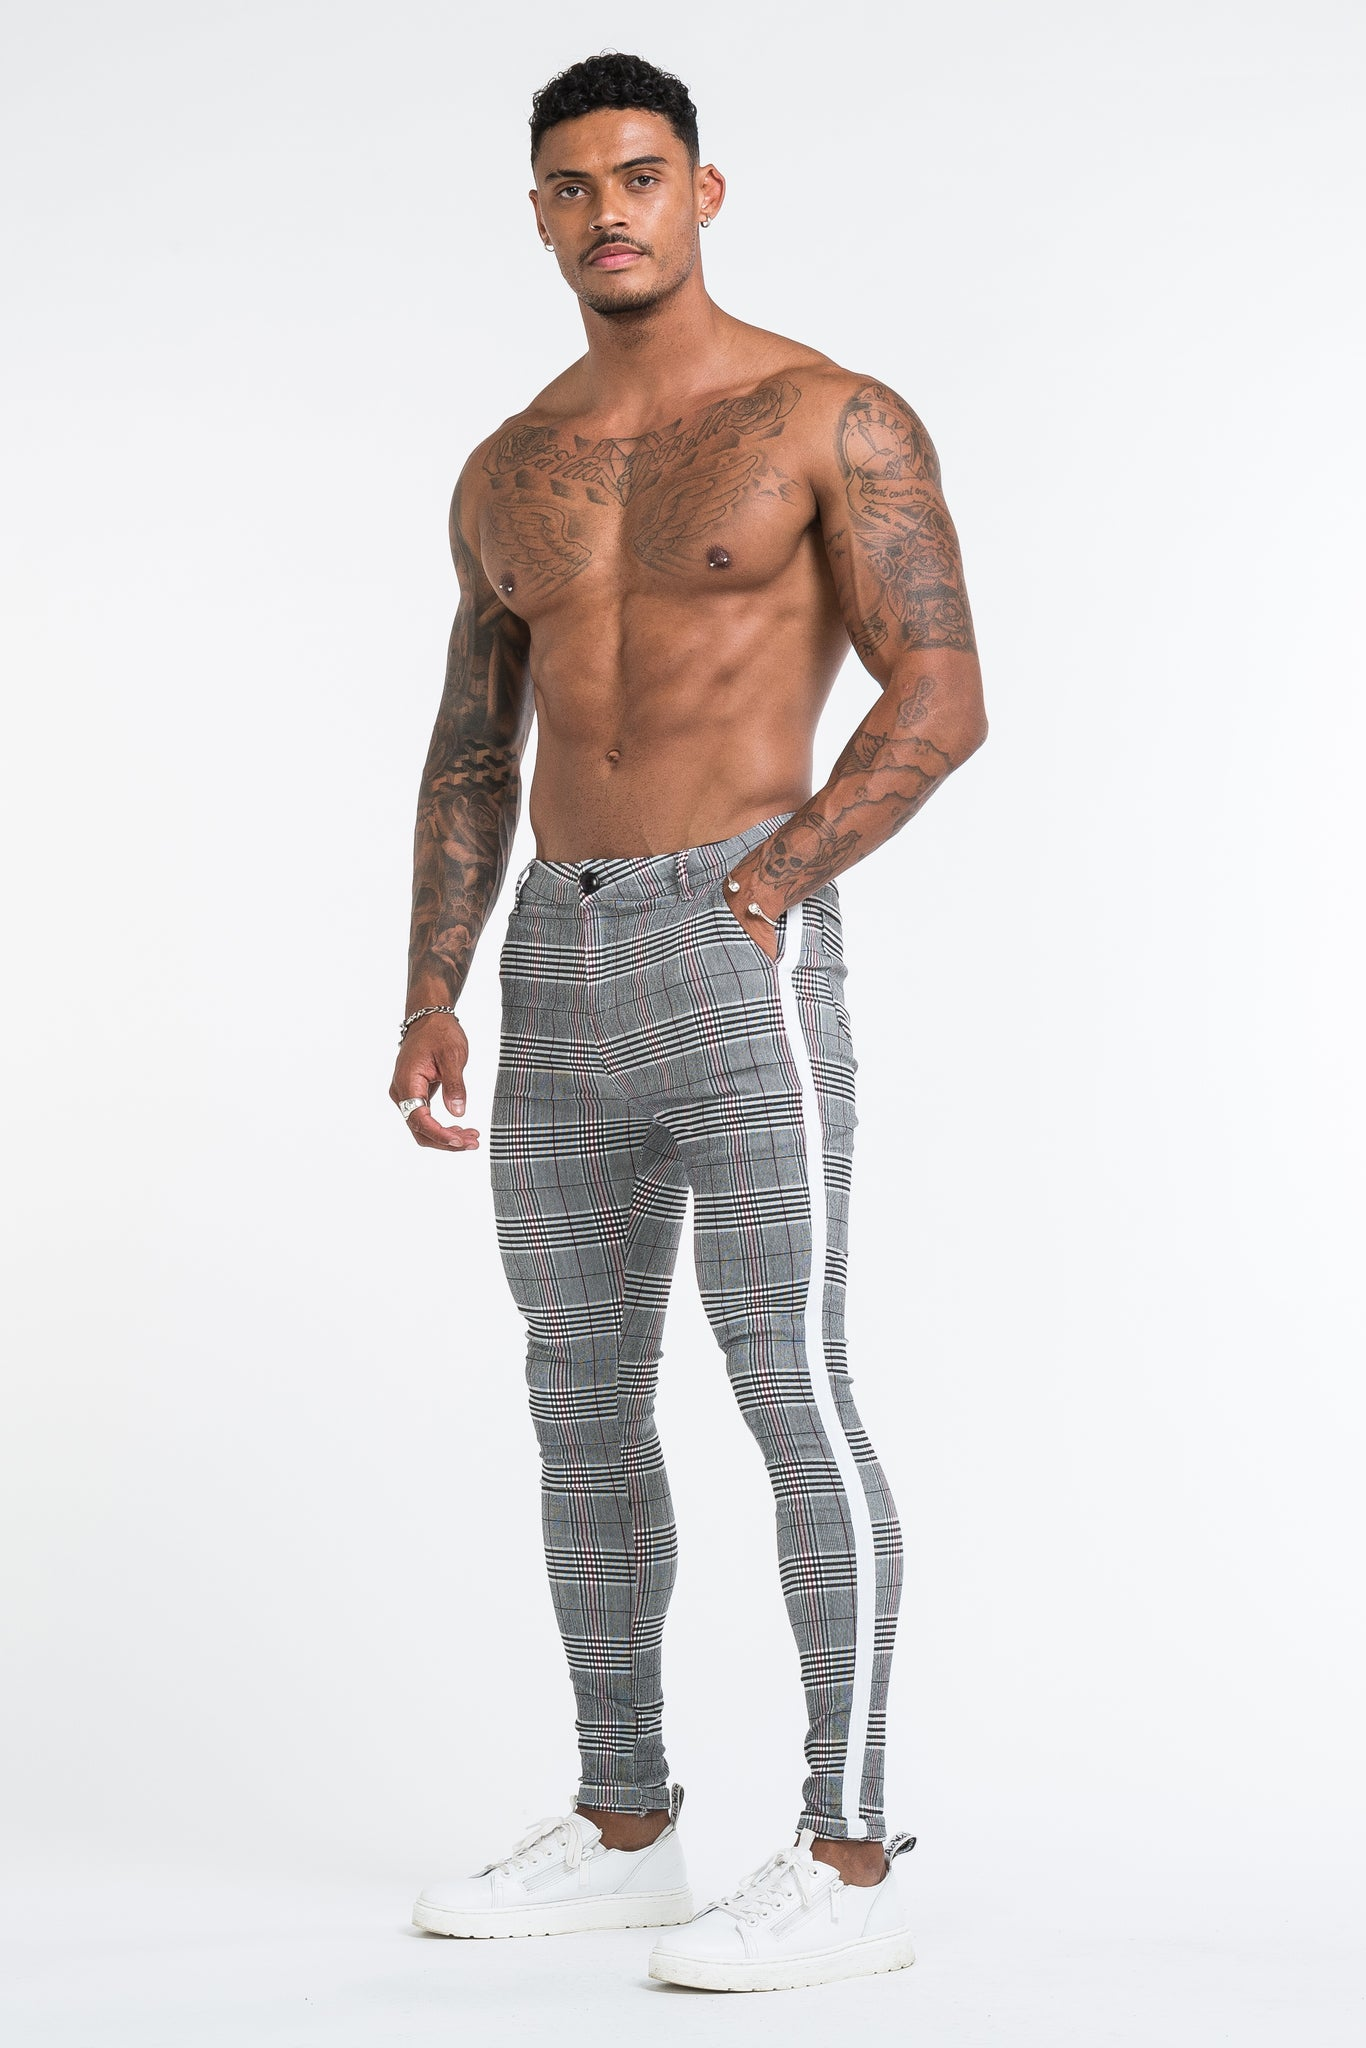 THE VIERA TROUSERS - GREY/WHITE